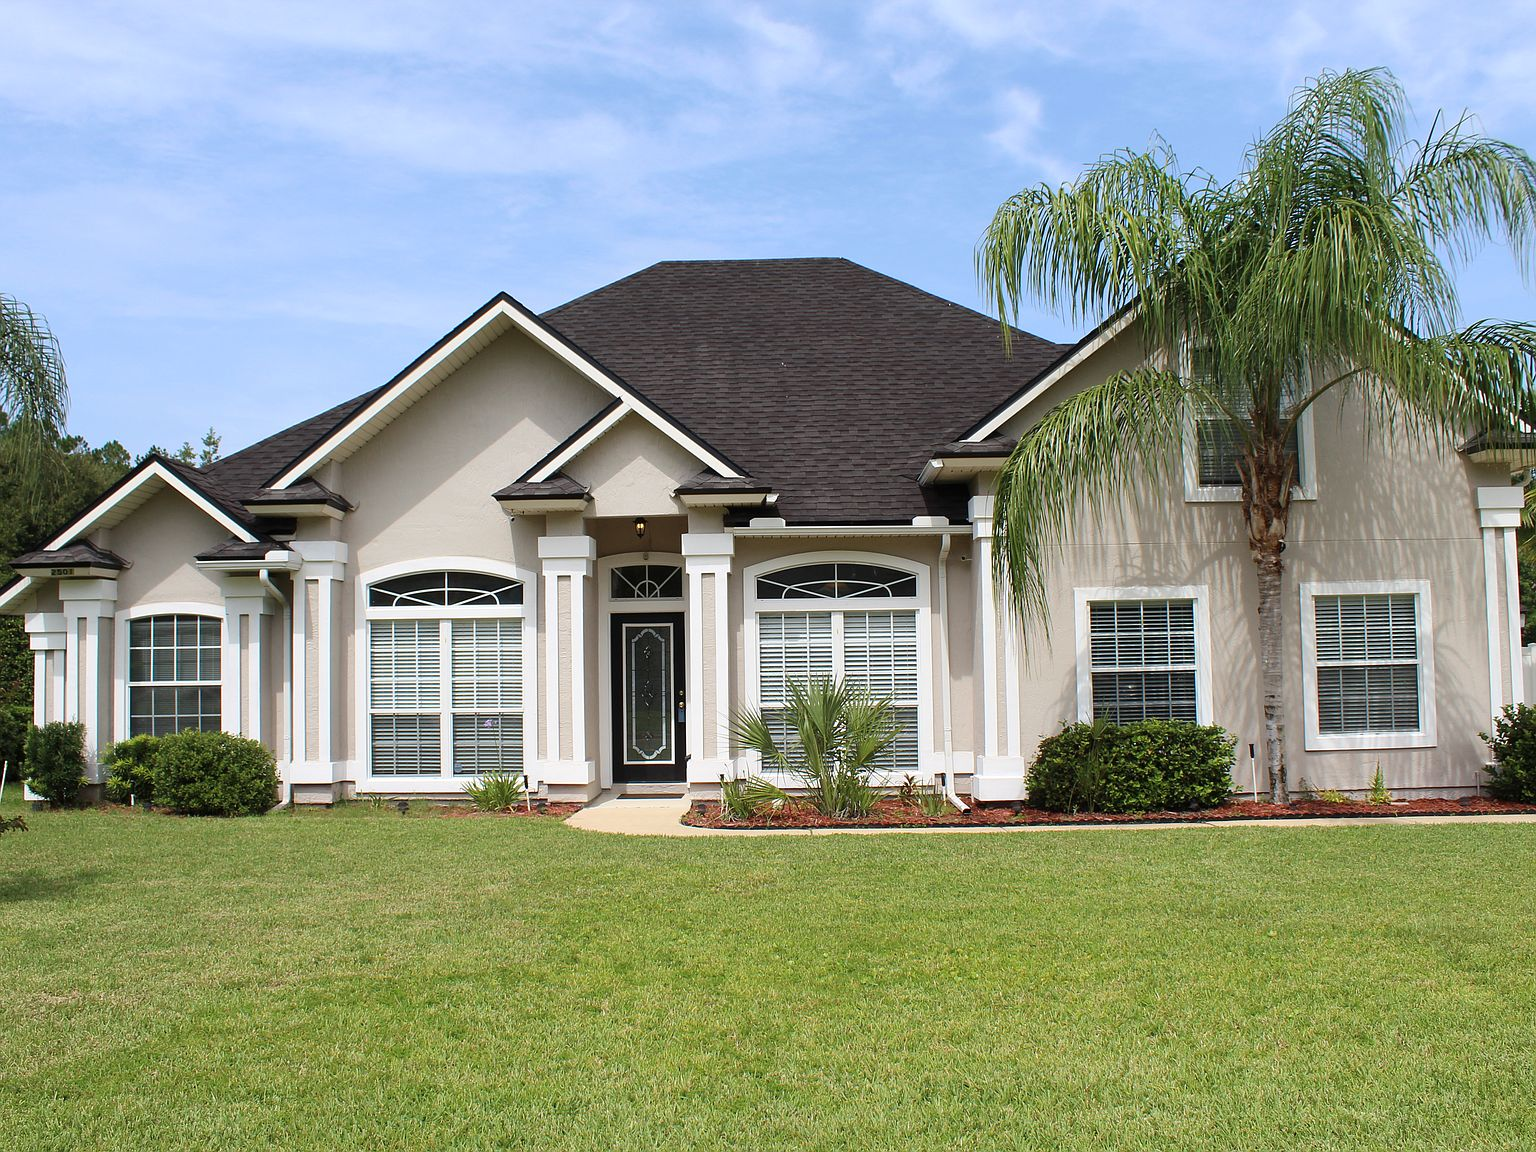 2501 Camco Ct Saint Johns Fl 32259 Zillow